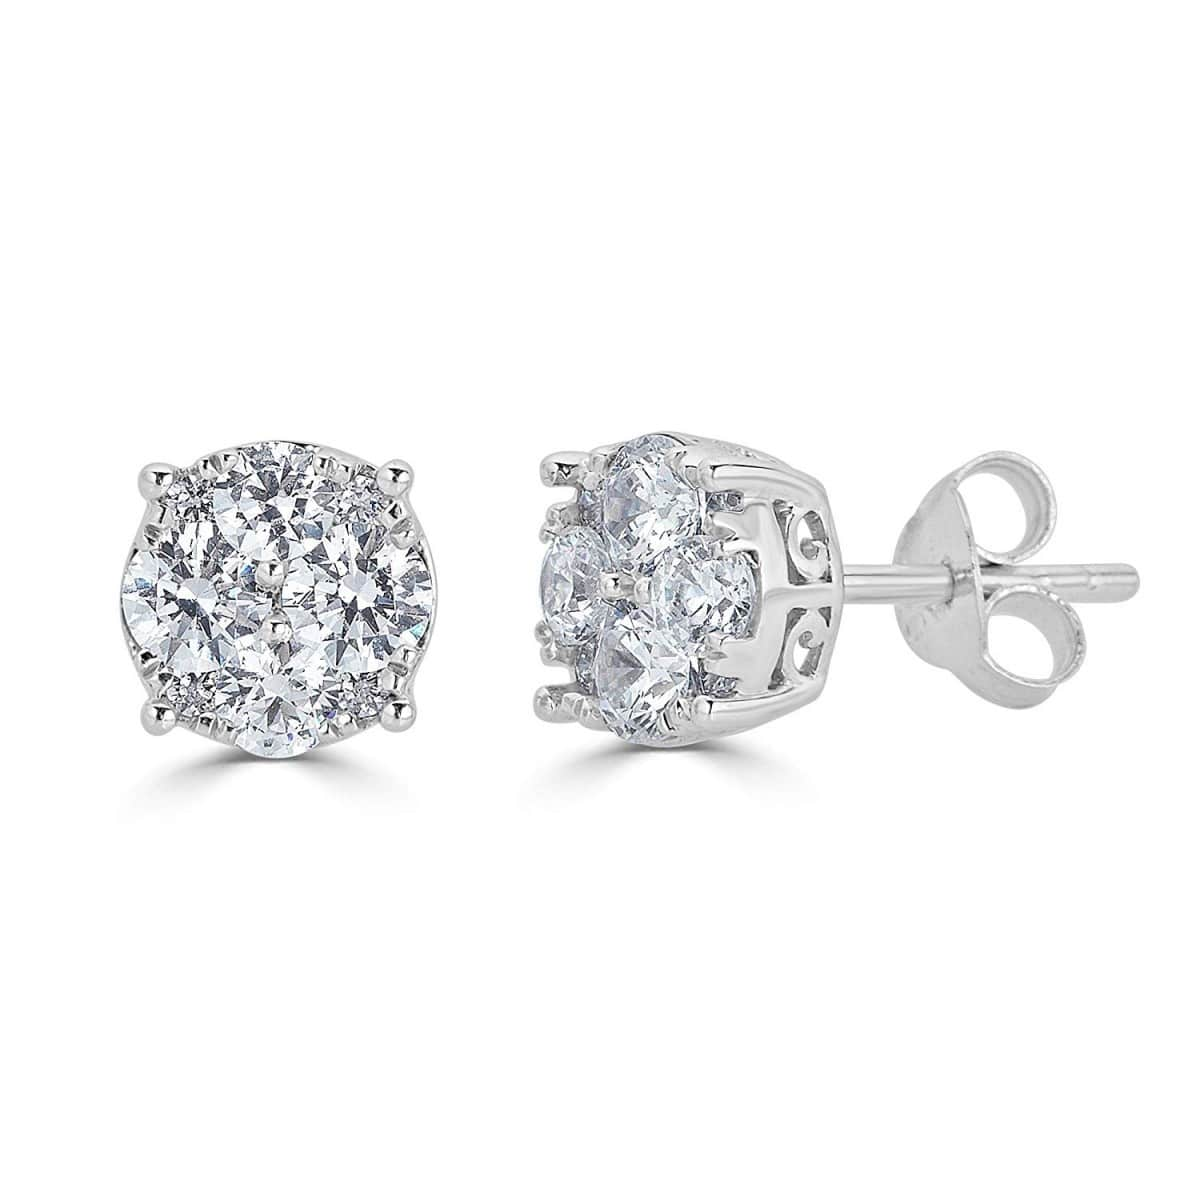 Amazon Prime Day Get Ready For The Best Sale 2019 | Travel Beauty Blog | Amazon Prime Day 2019 | Sterling Silver Diamond Stud Earrings